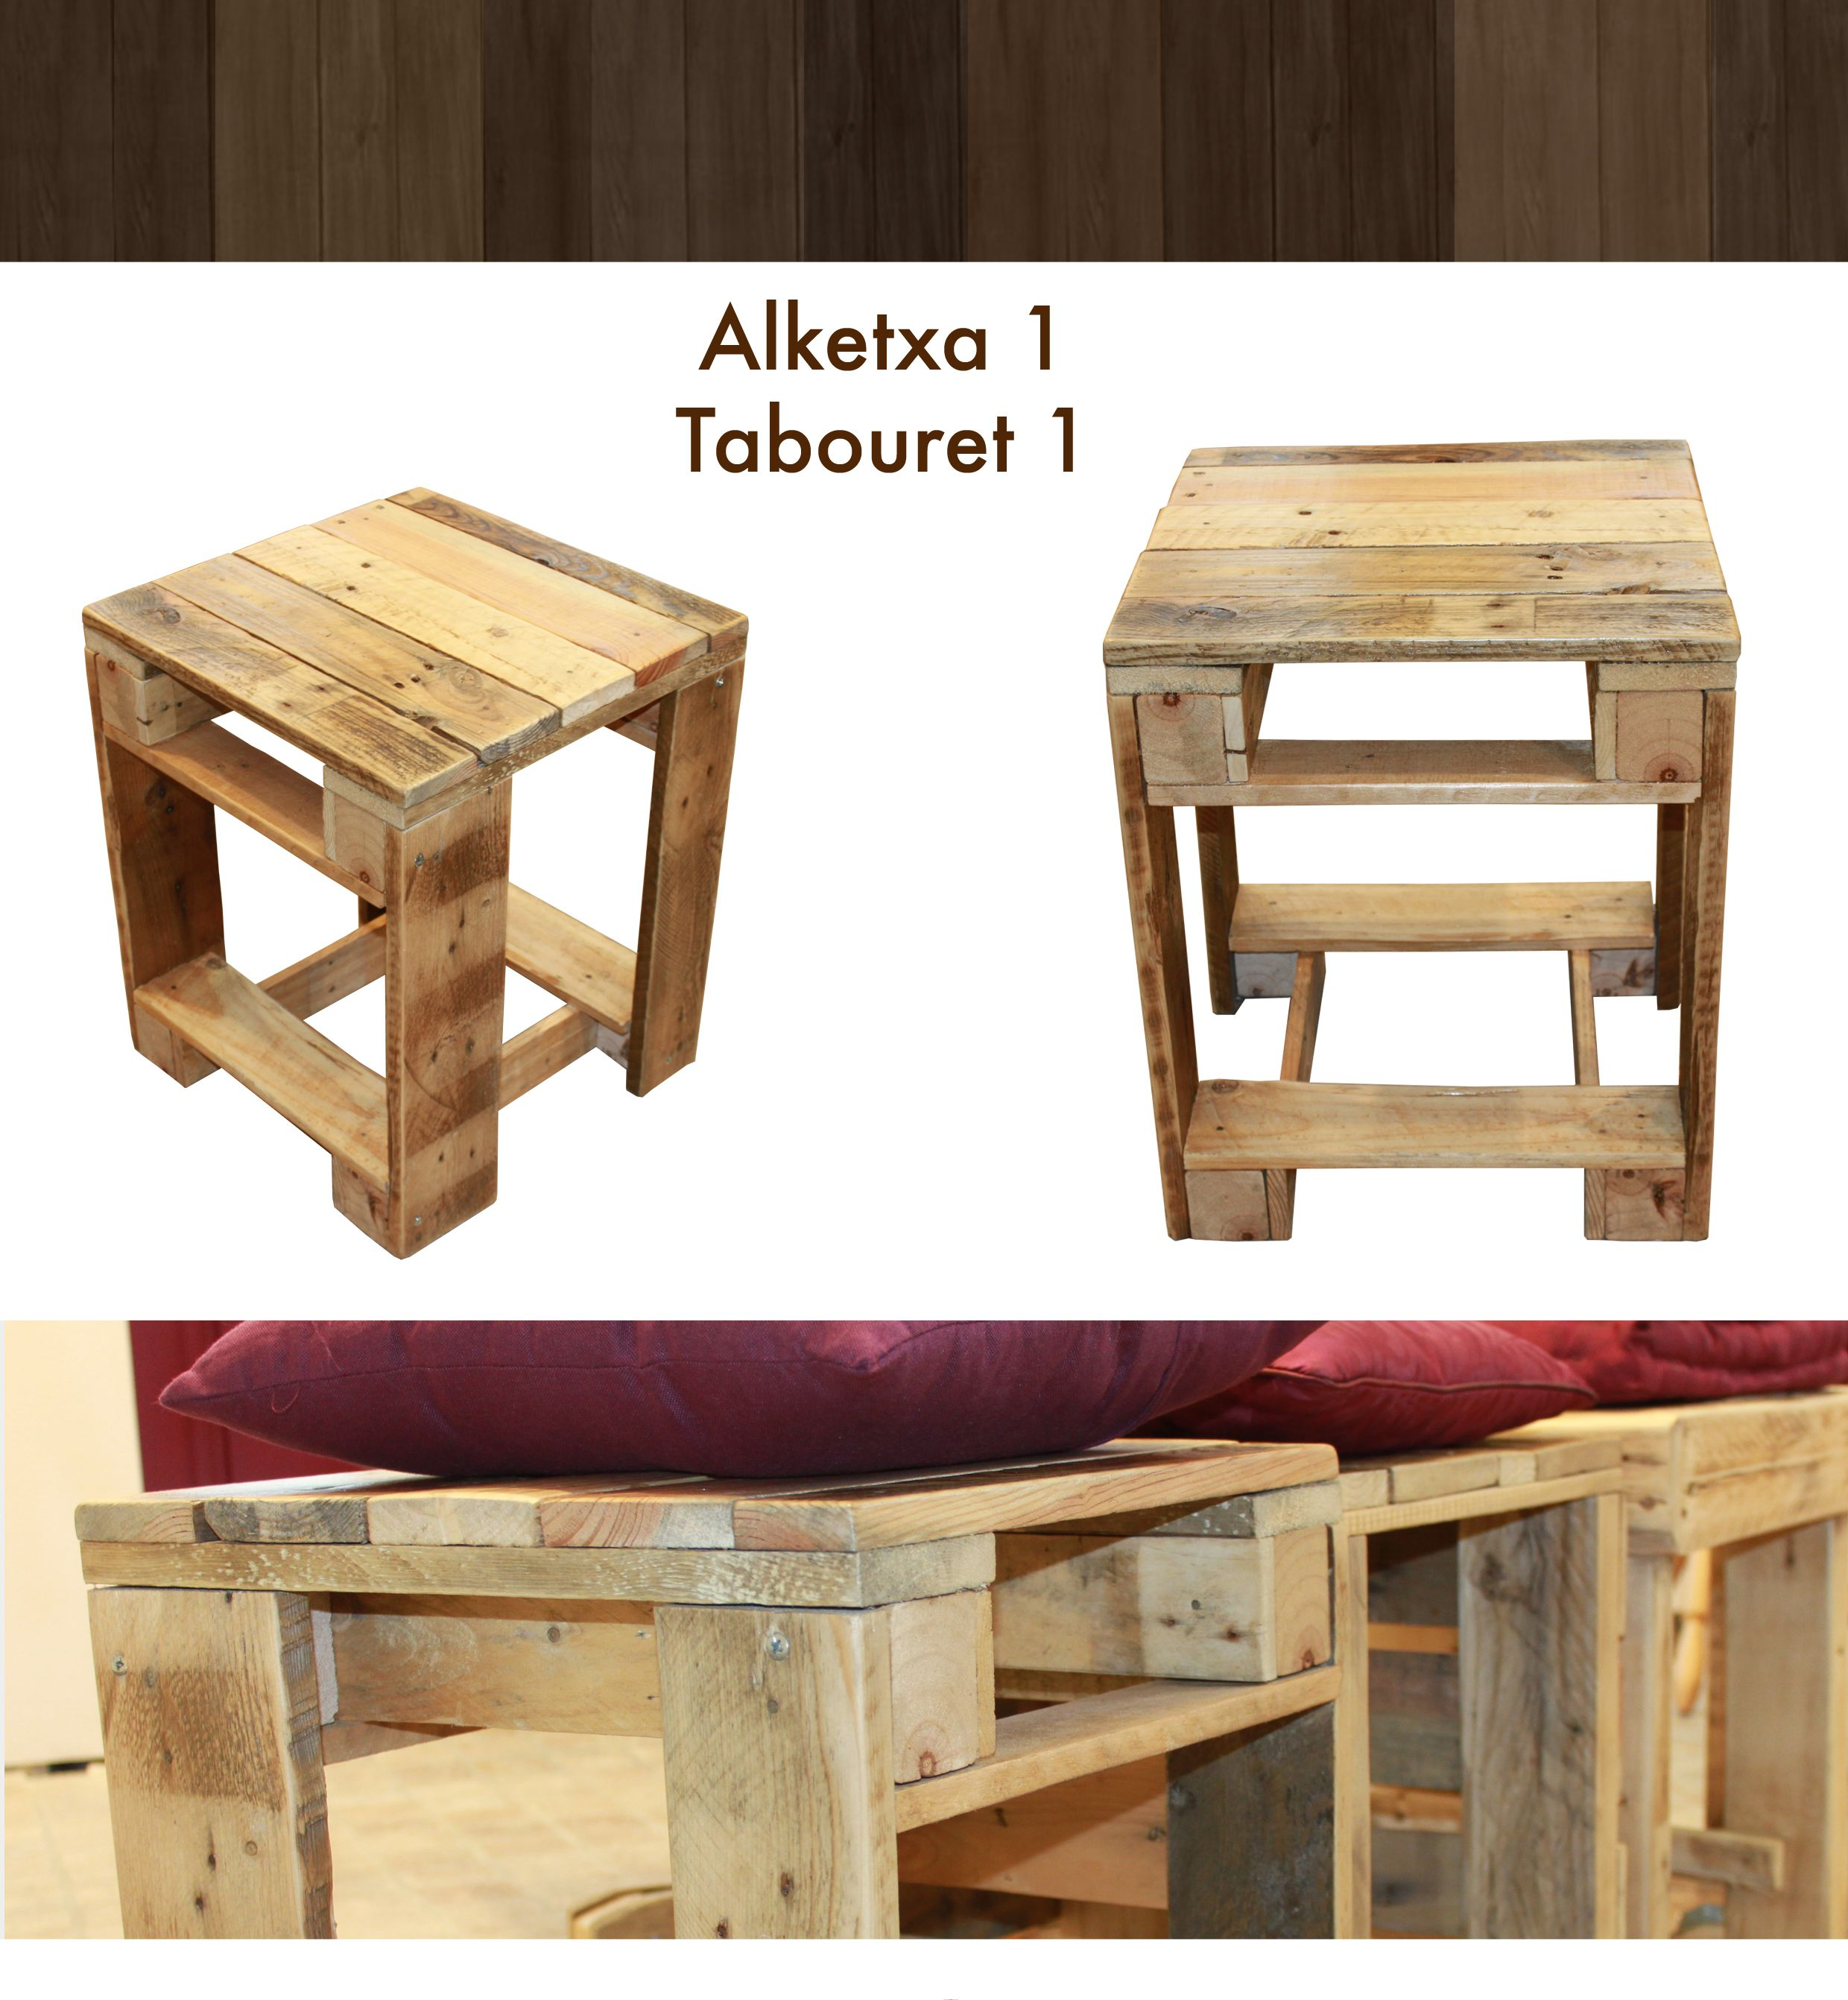 petit tabouret en bois de palette les meubles en palette. Black Bedroom Furniture Sets. Home Design Ideas